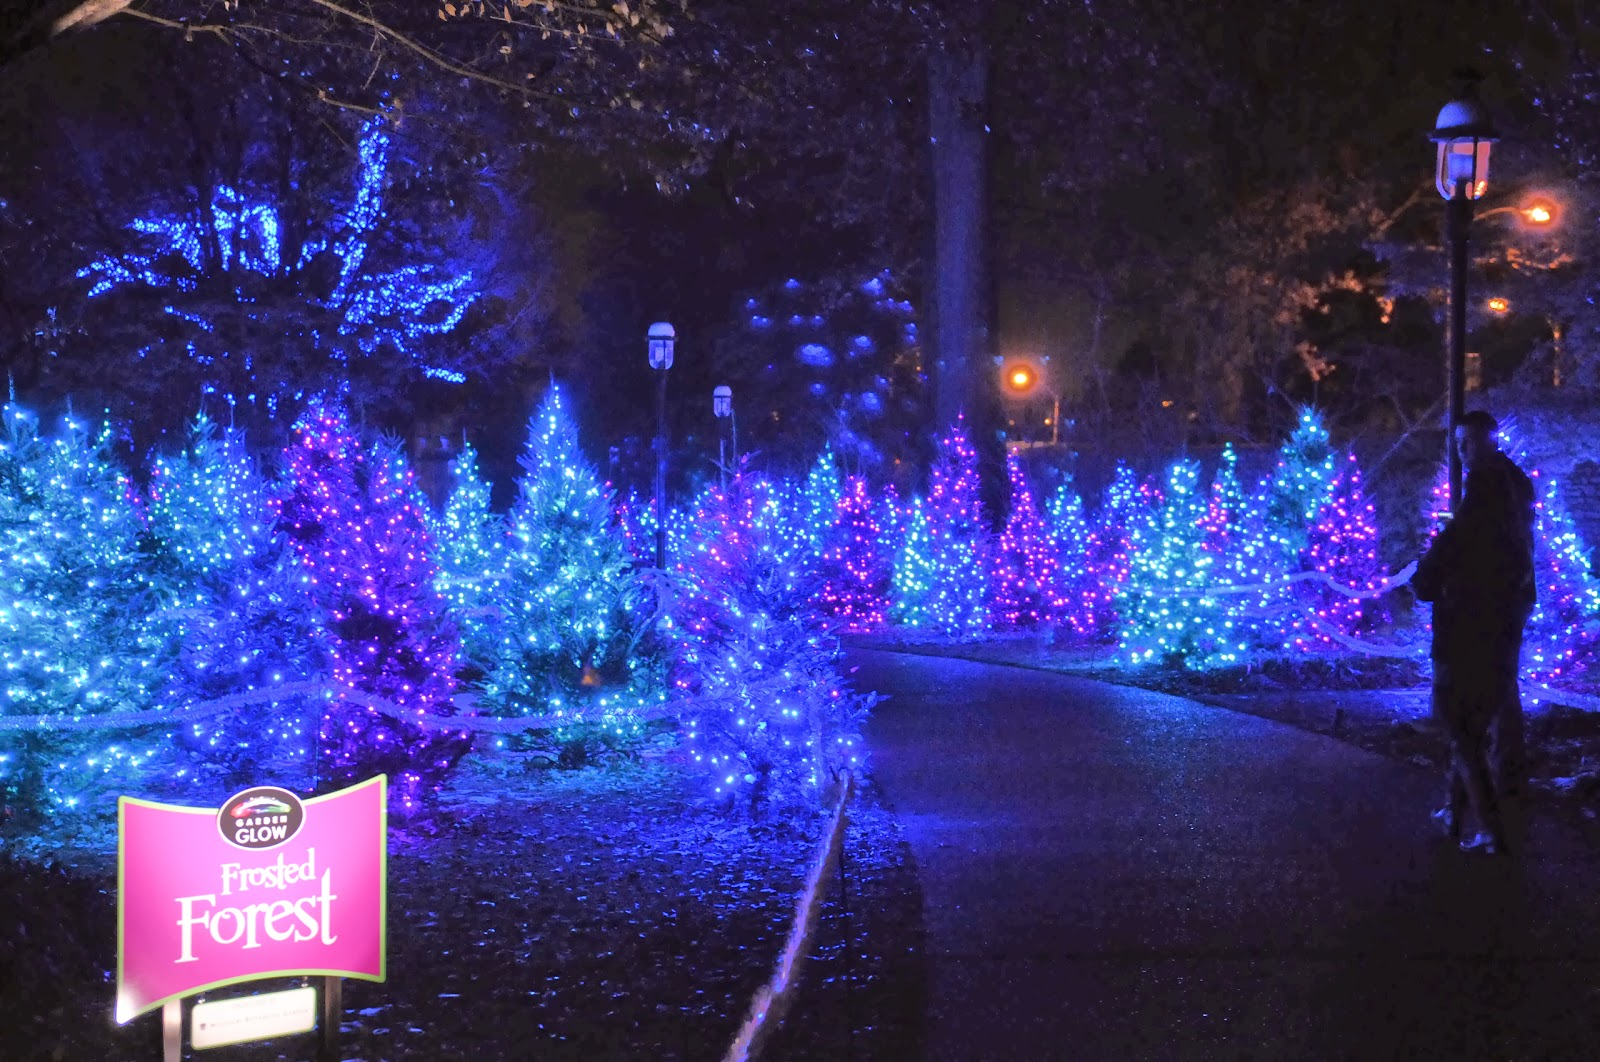 Merveilleux You Can Add Gardenland Express Admission To The Garden Glow For An  Additional $4.